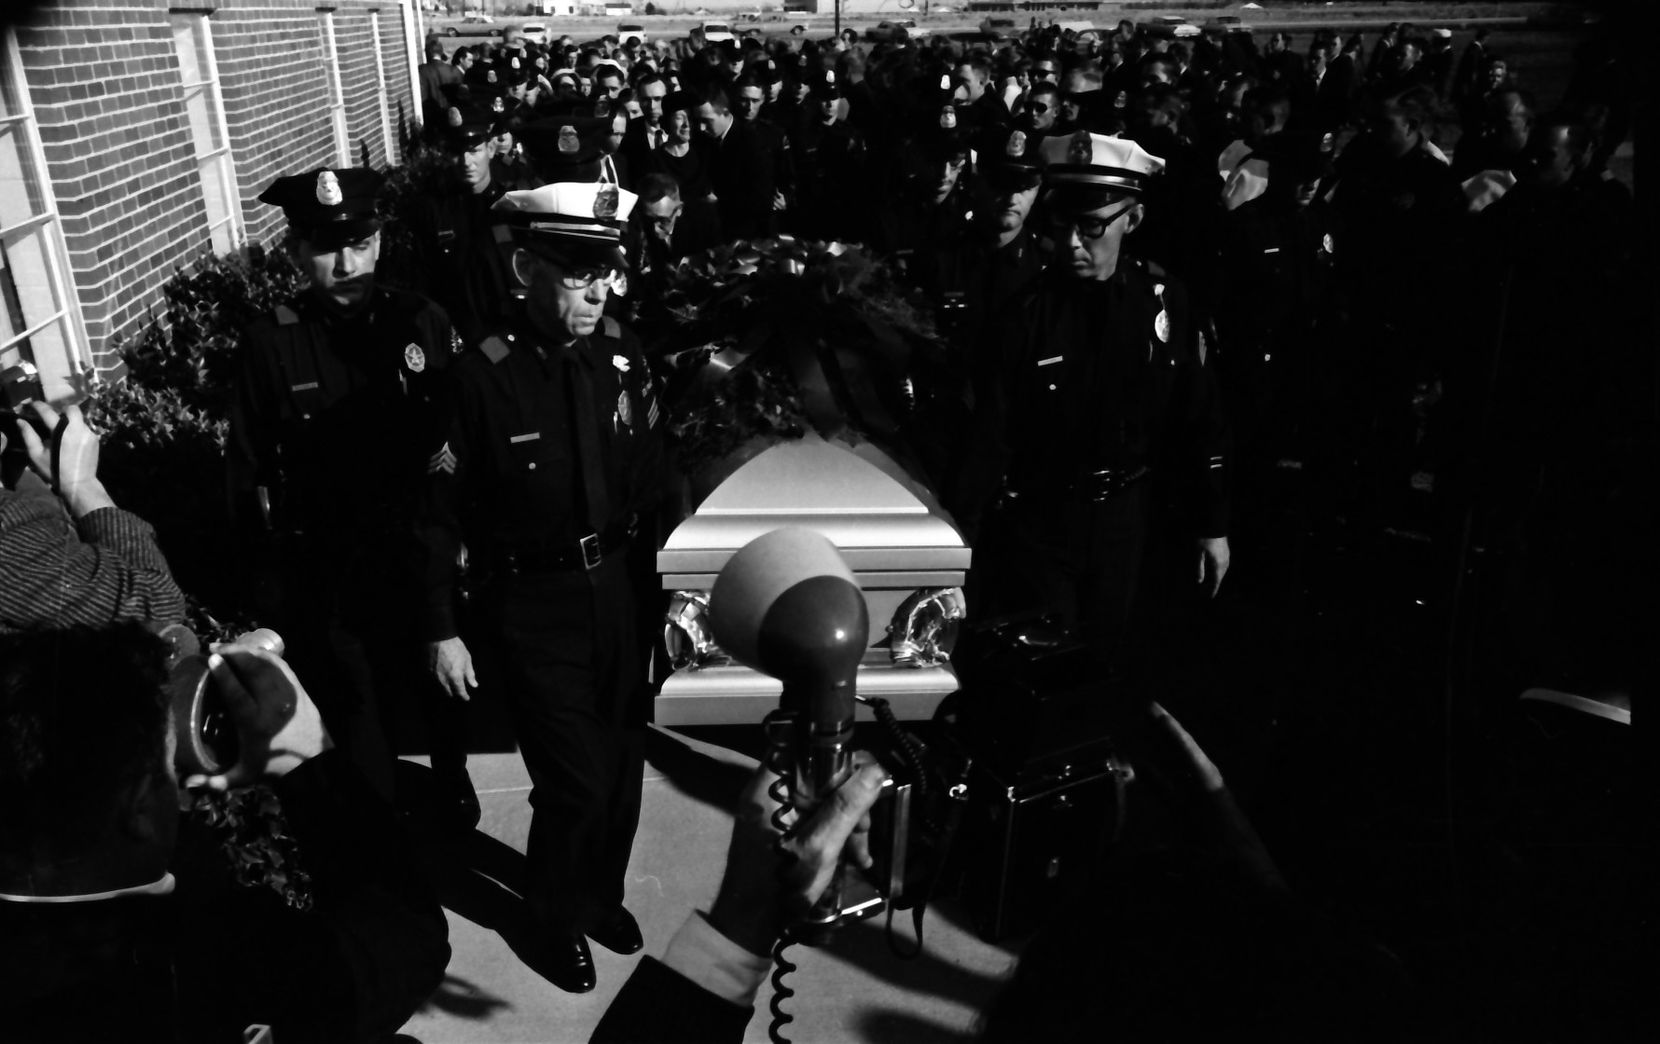 Officers held J.D. Tippit's casket at his funeral in 1963.